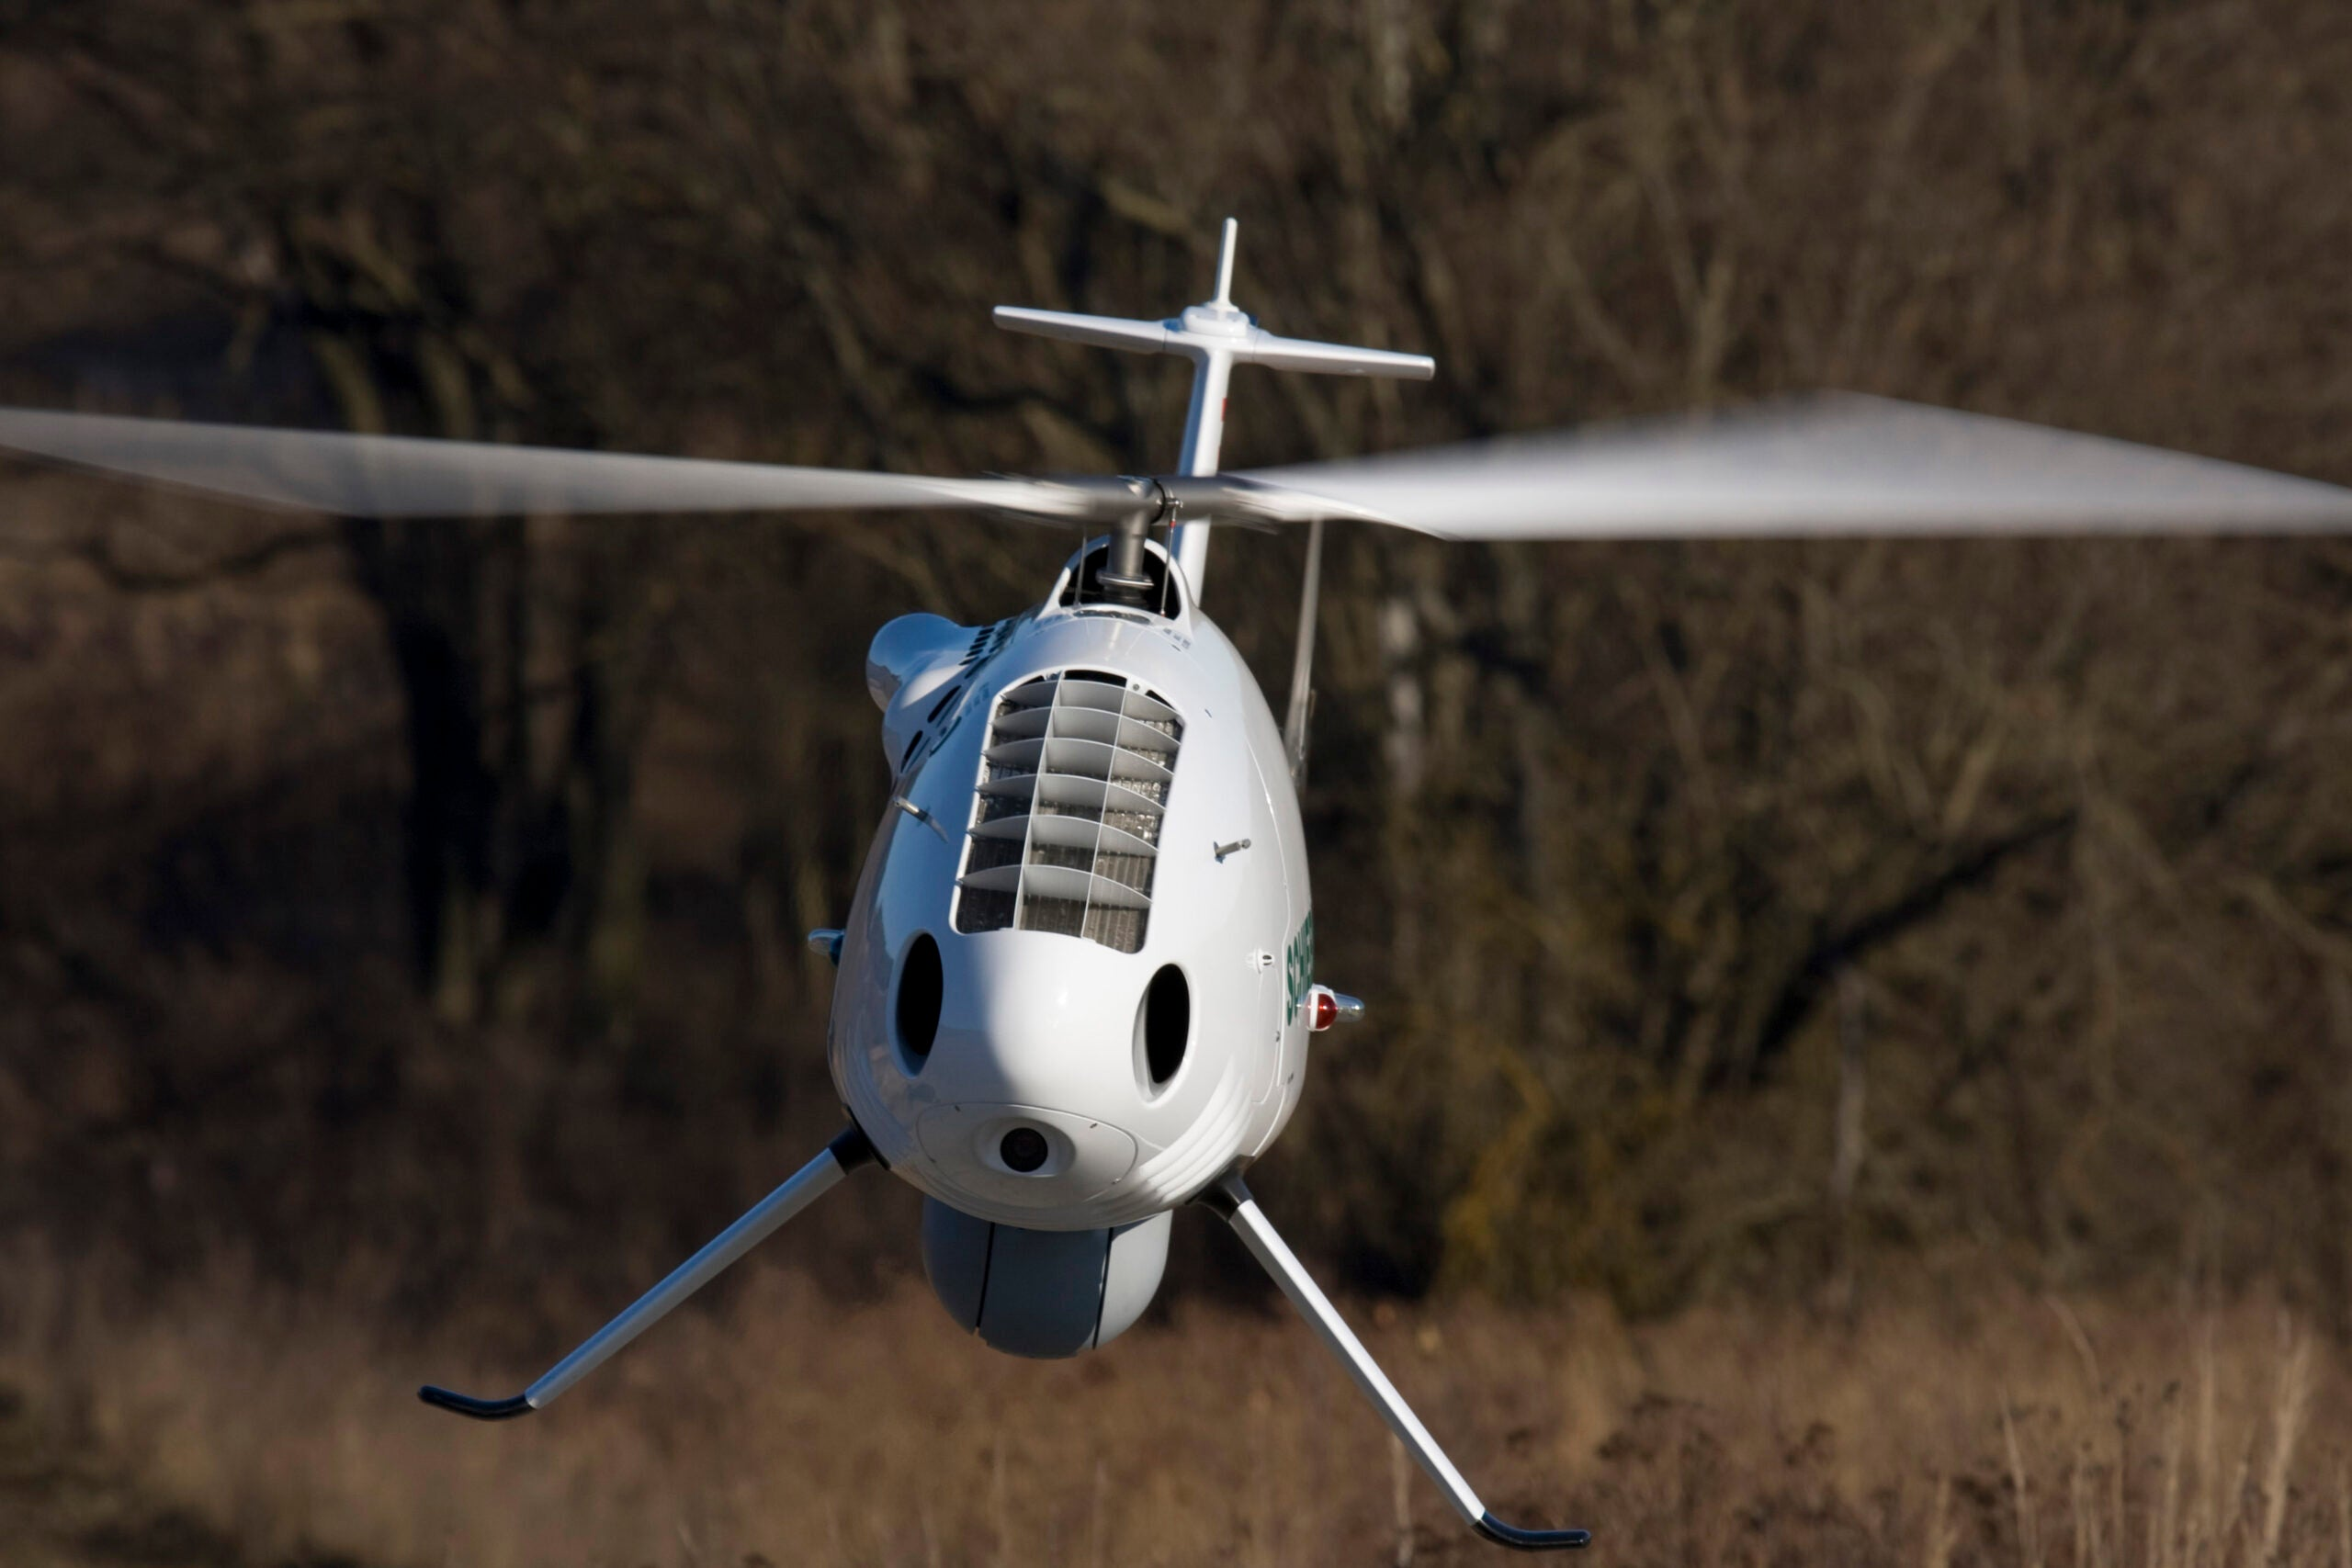 New Unmanned Chopper Sniffs Out Improvised Explosives While Looking Adorable